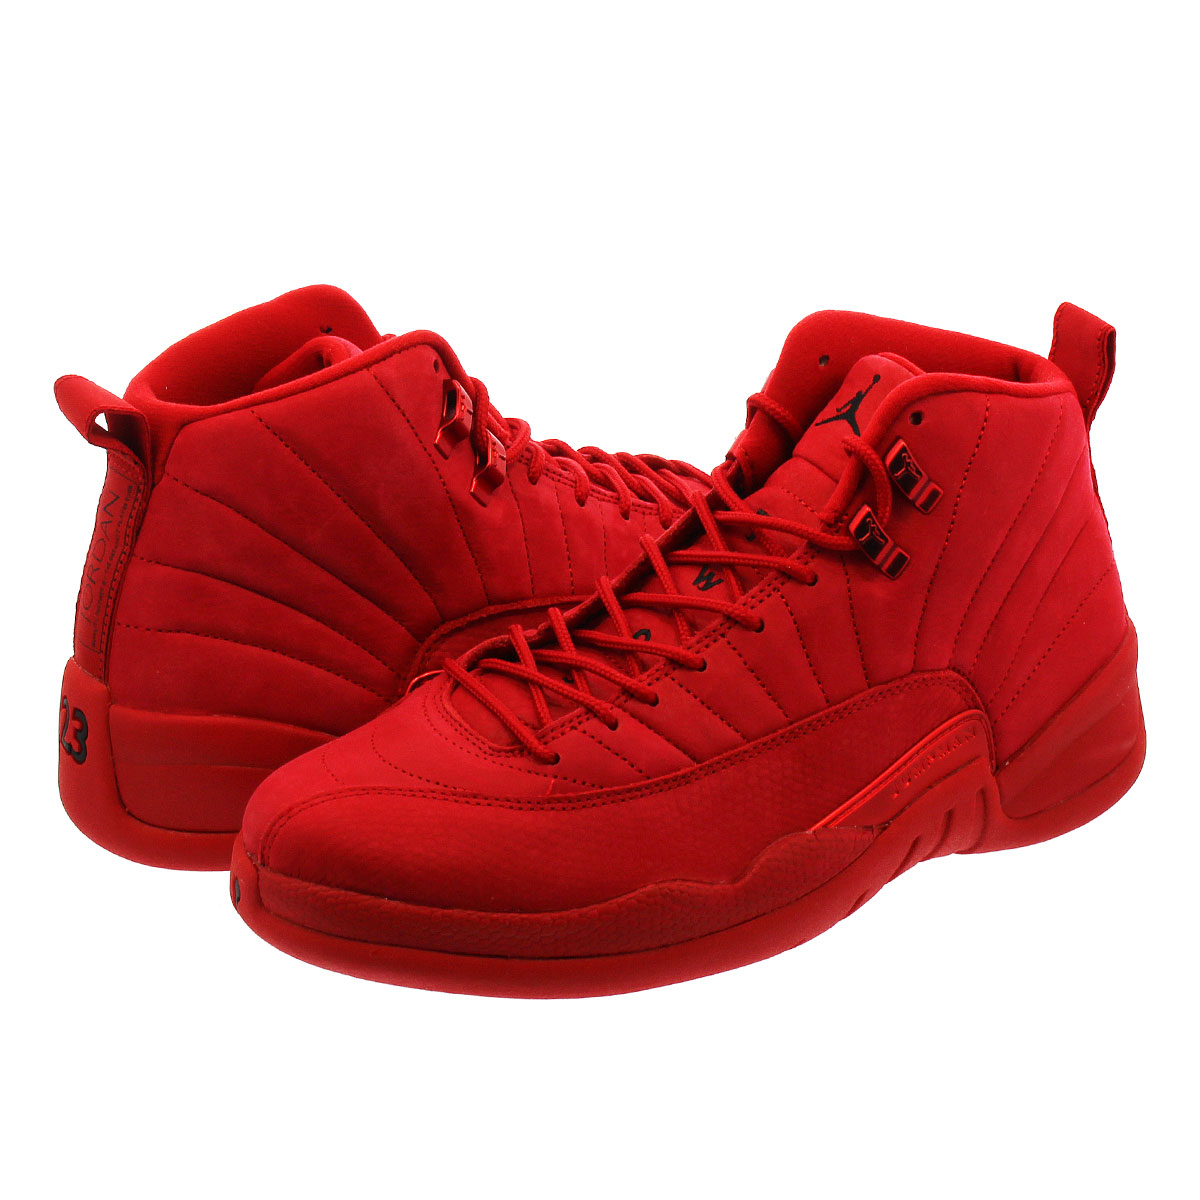 huge discount 91f8e 6b06d NIKE AIR JORDAN 12 RETRO Nike Air Jordan 12 nostalgic GYM RED BLACK  130,690- ...